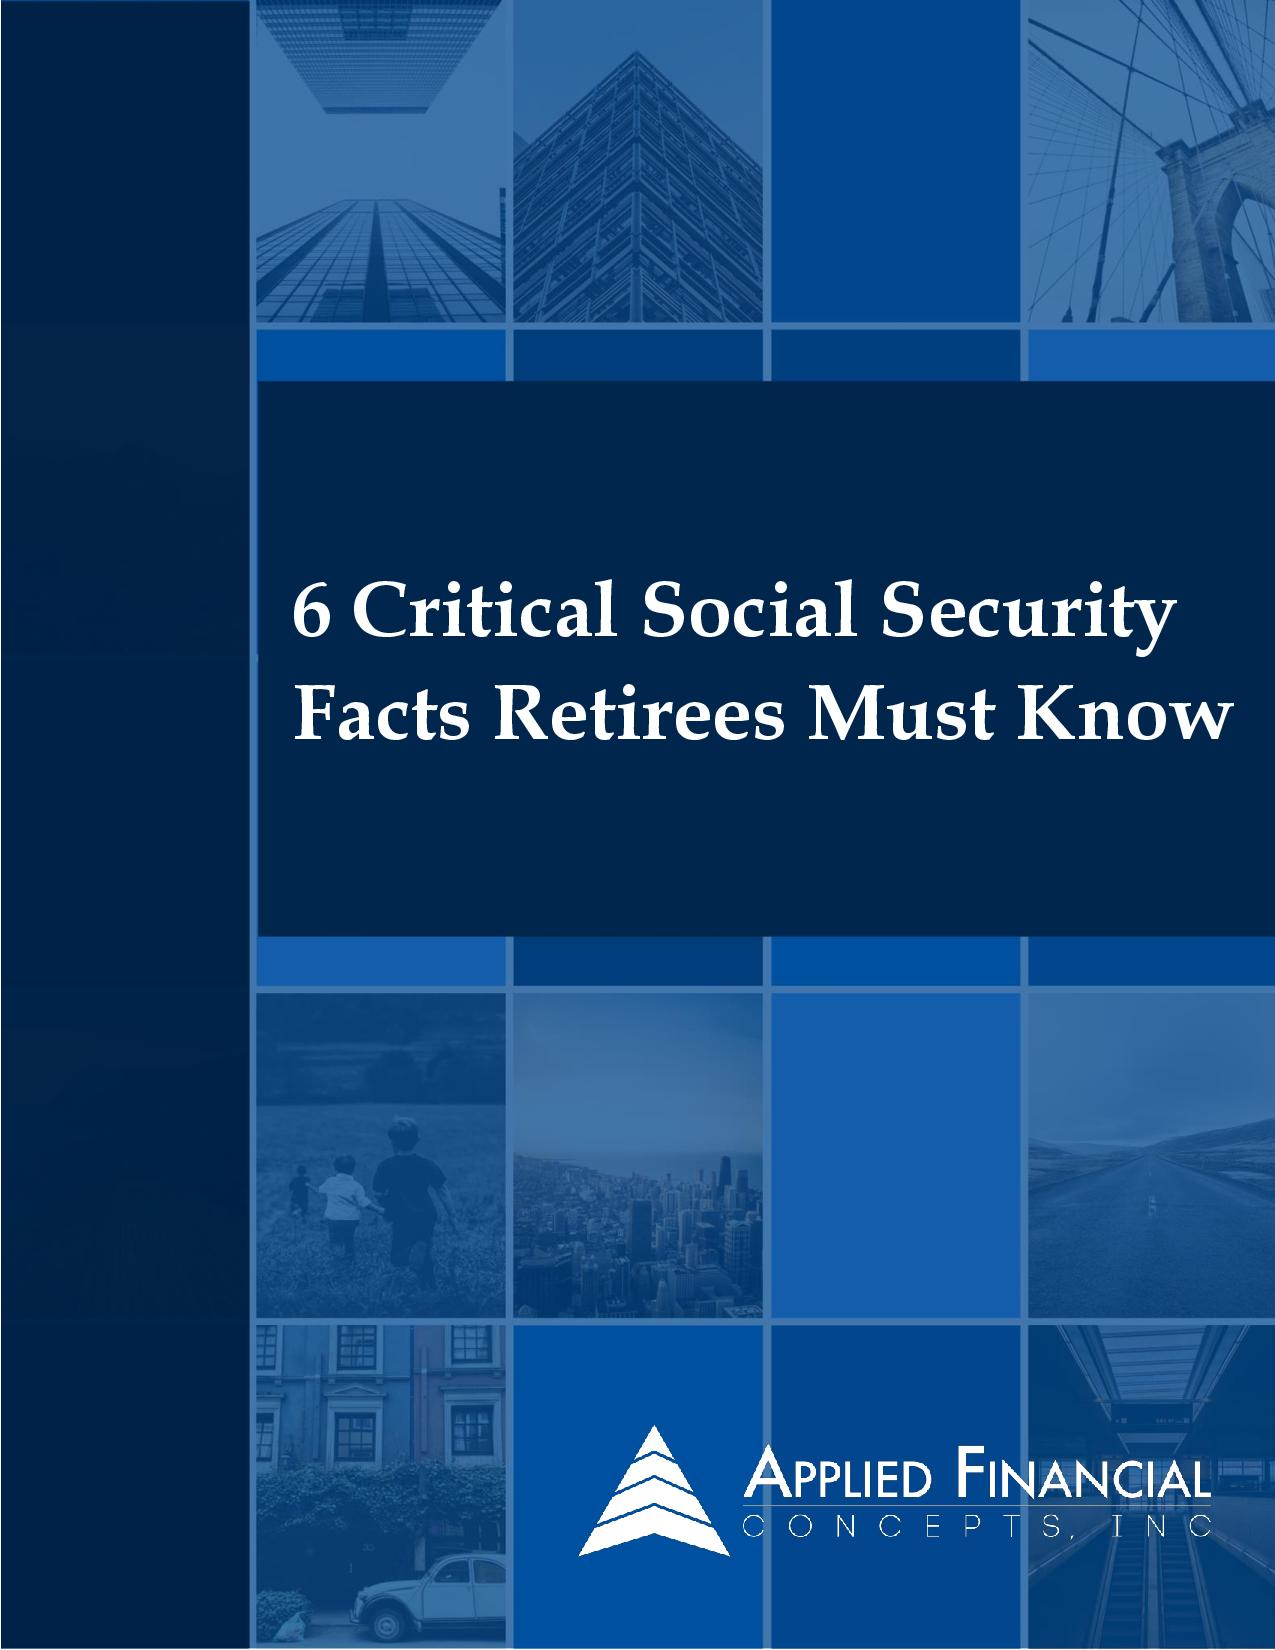 Social Security Guide picture.jpg